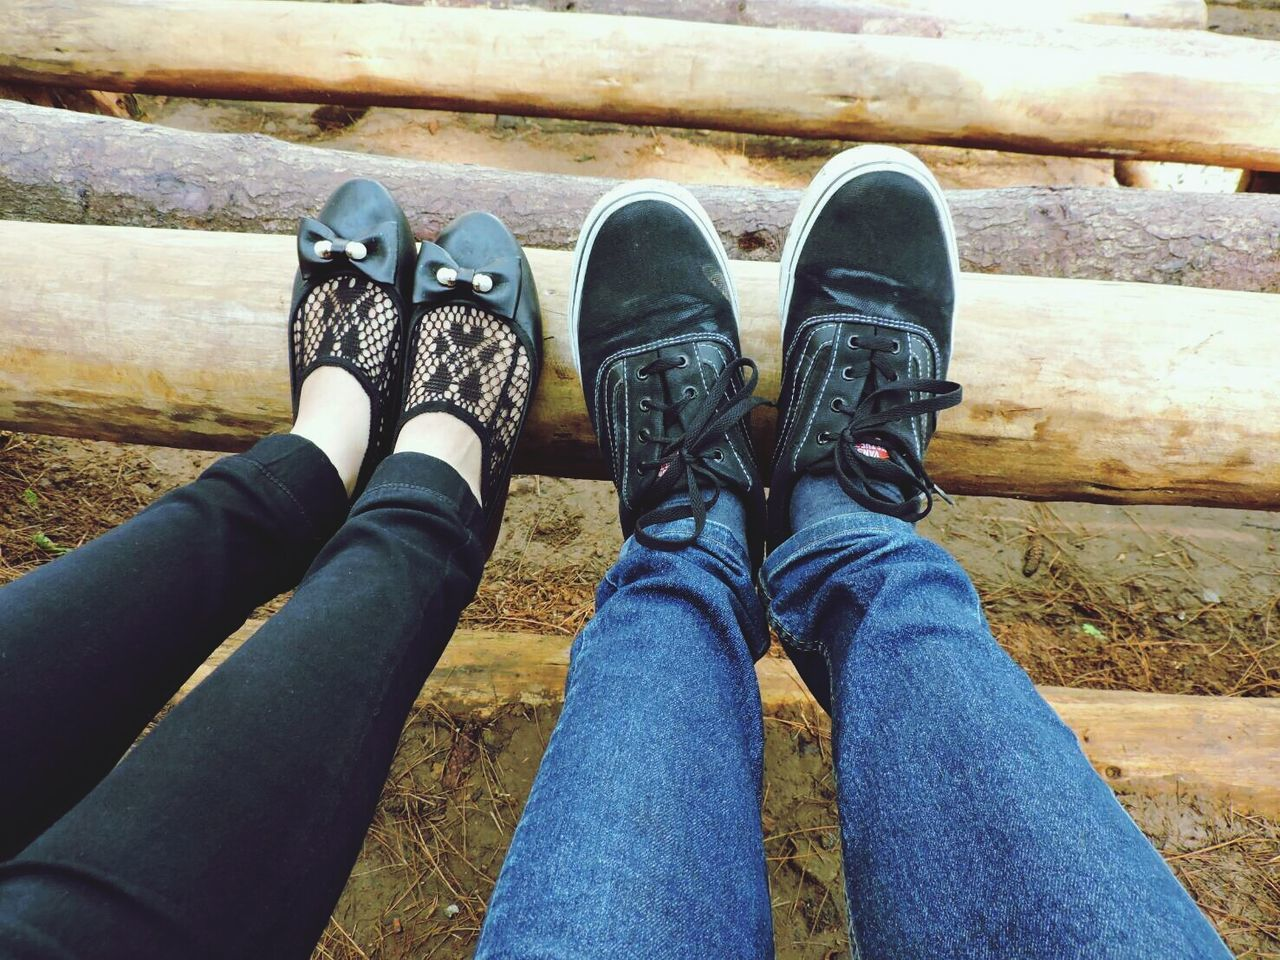 shoe, low section, human leg, real people, jeans, day, outdoors, human body part, togetherness, lifestyles, standing, men, people